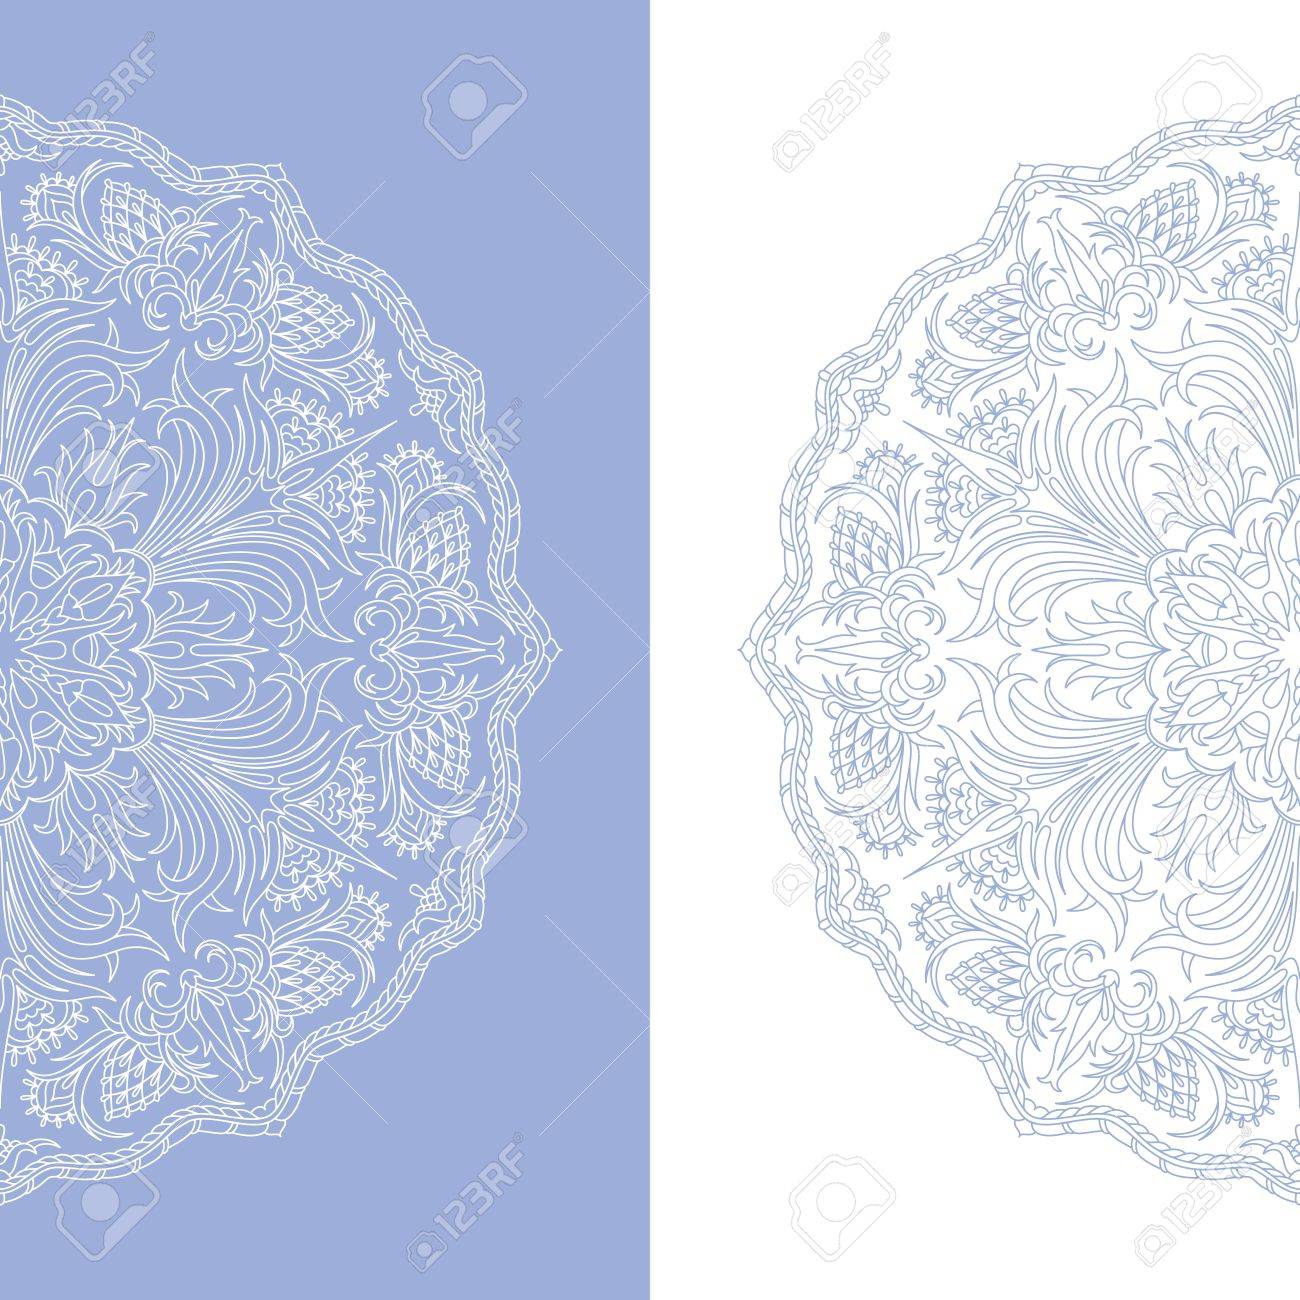 illustration with vintage pattern for print. Stock Vector - 16483116